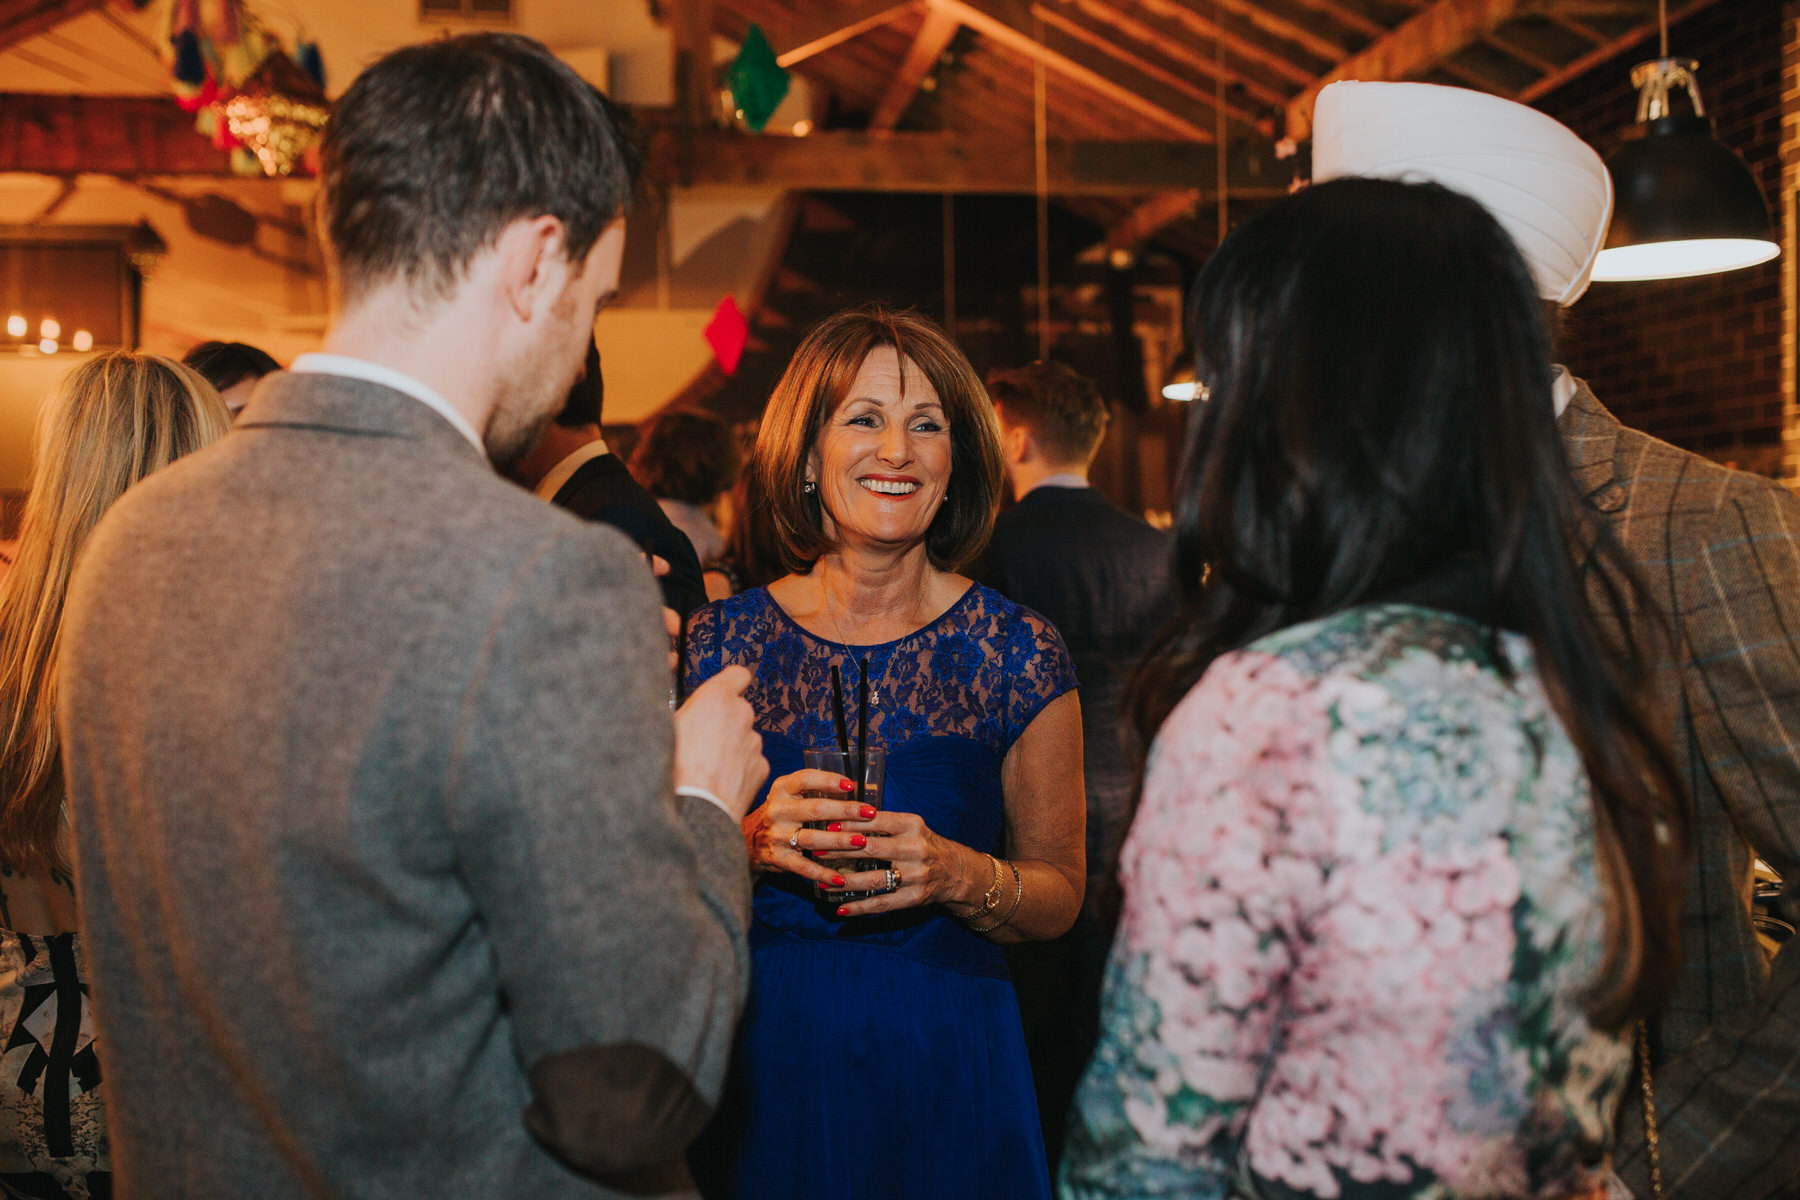 158-St Chads Place groom's mother wedding anniversary party.jpg